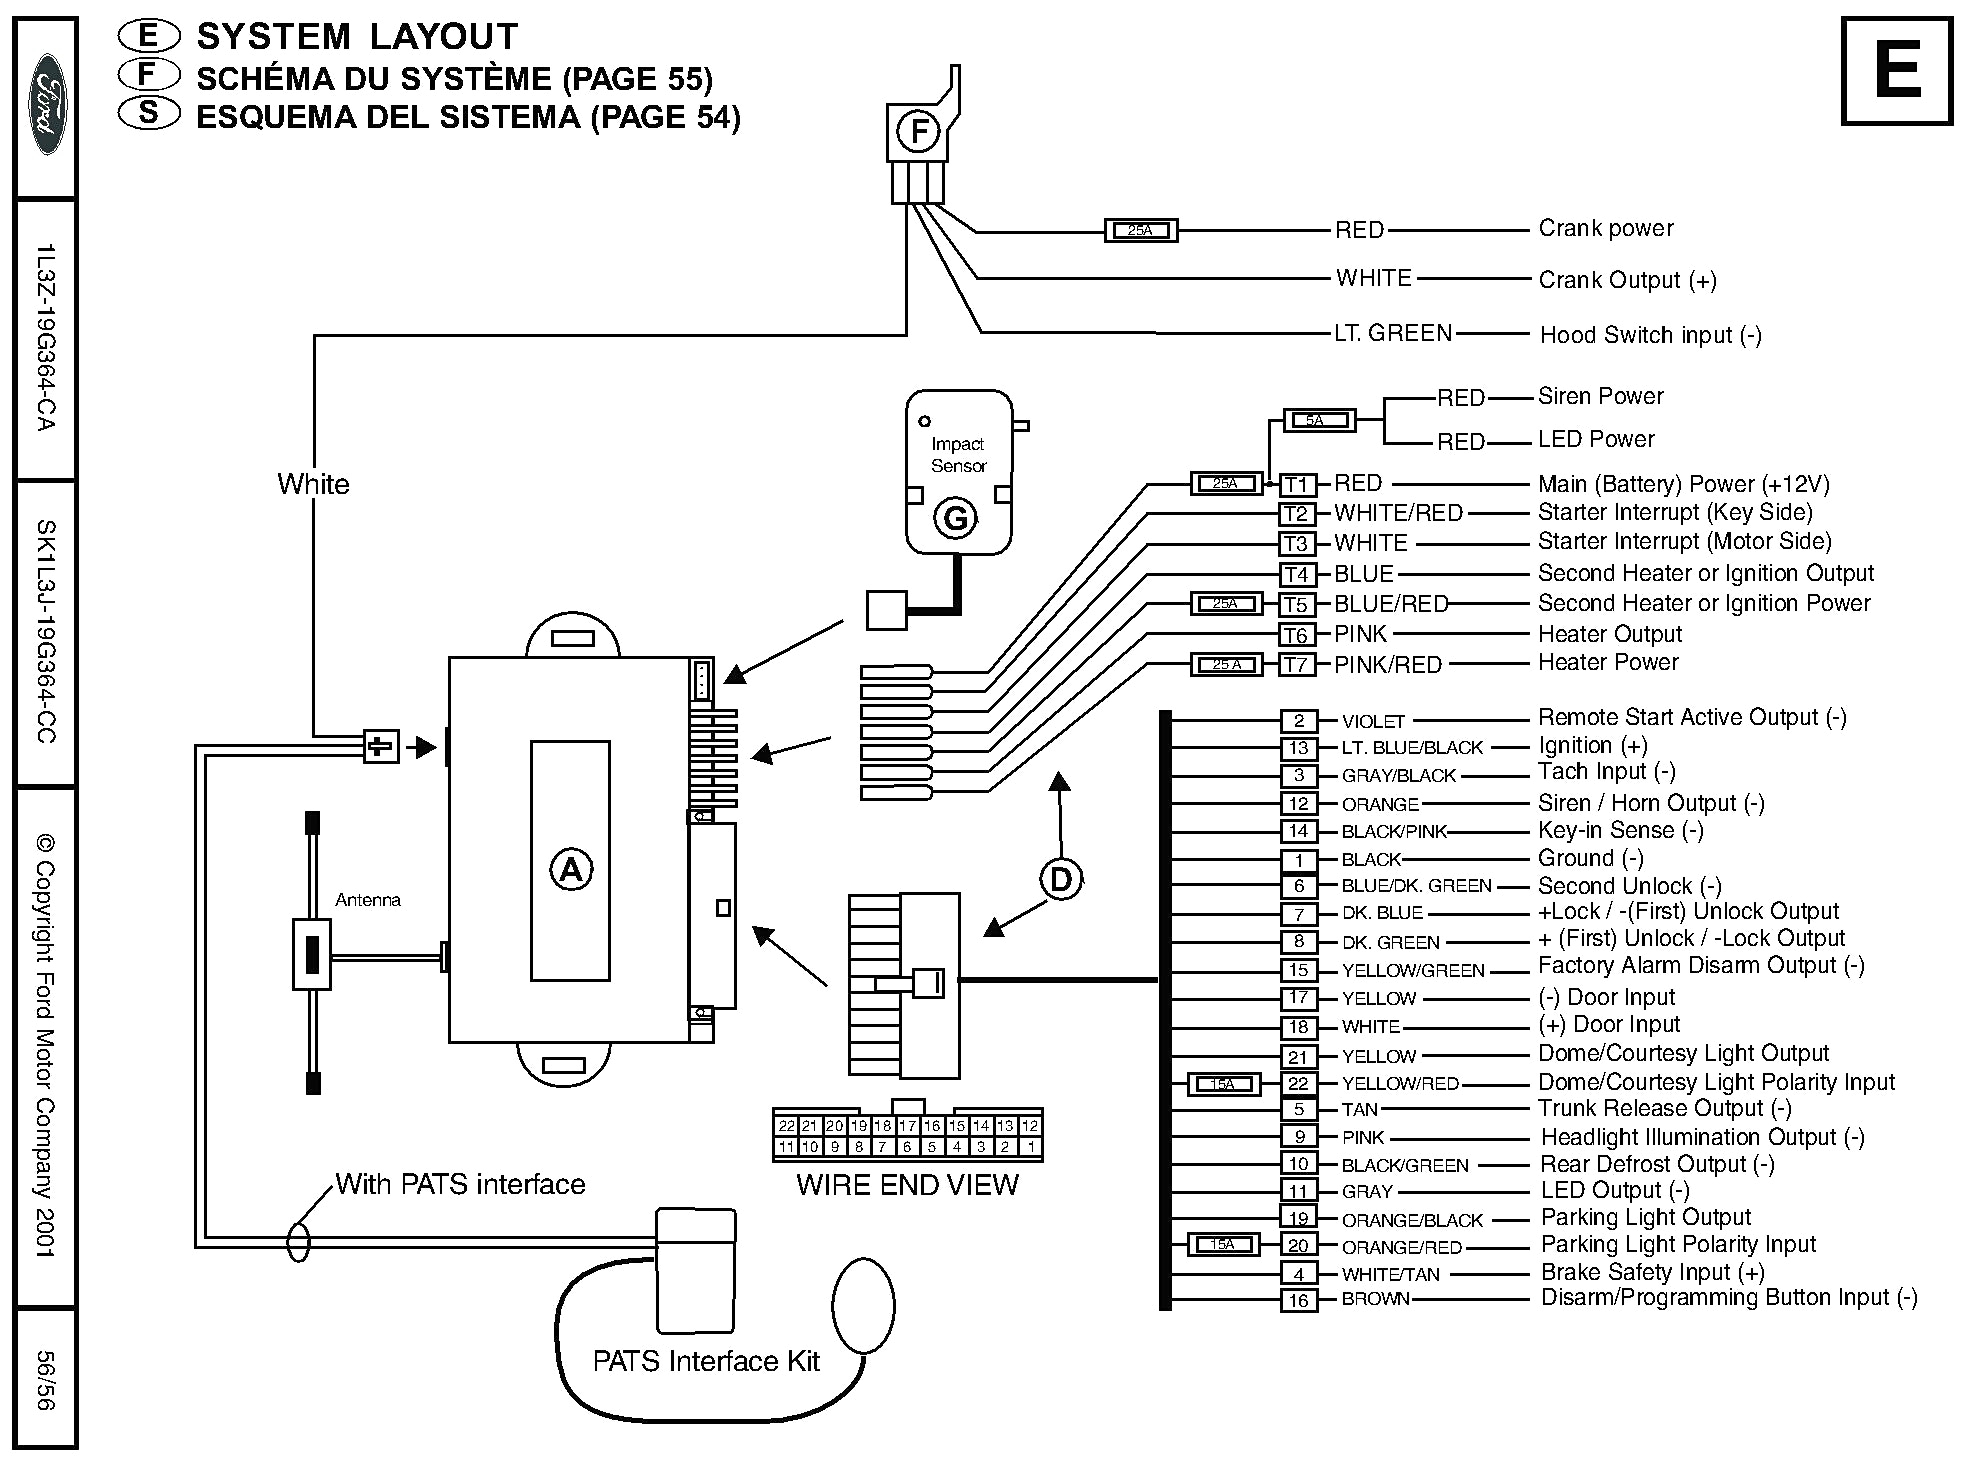 2003 Tacoma Alarm Wiring - Wiring Diagram Data - Car Alarm Wiring Diagram